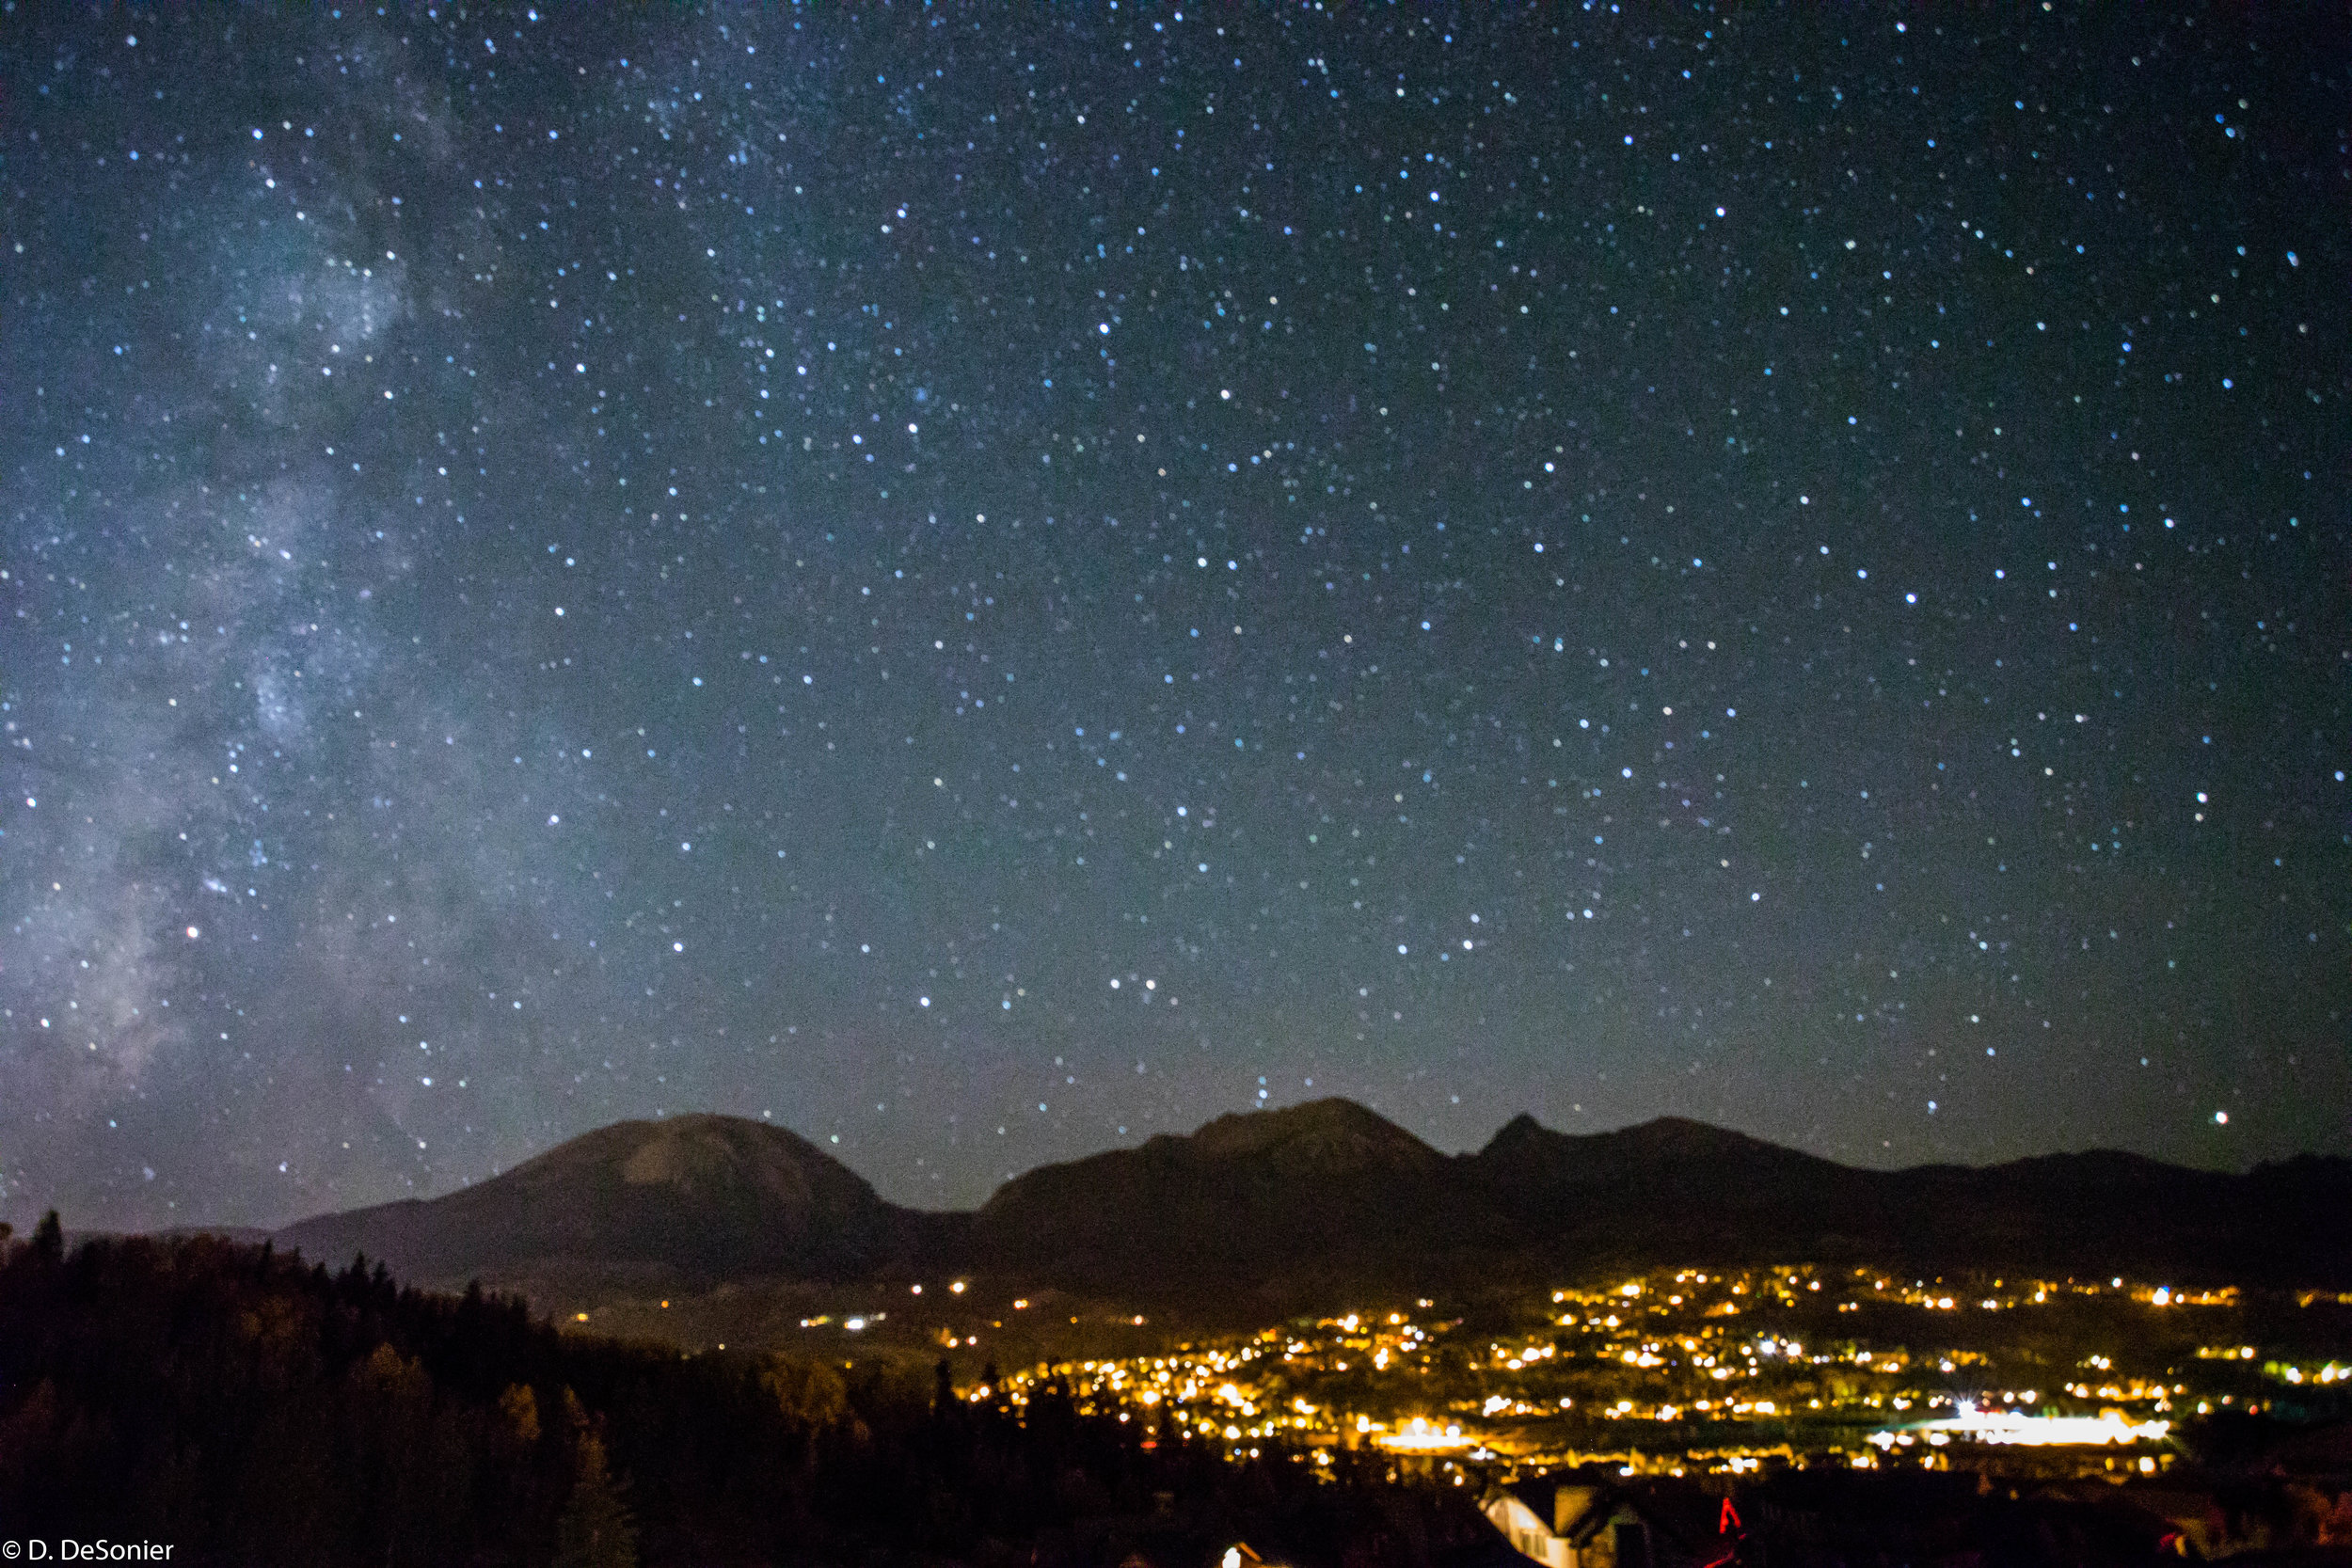 Silverthorne CO, about 9,000 ft elevation, 11pm in late September.